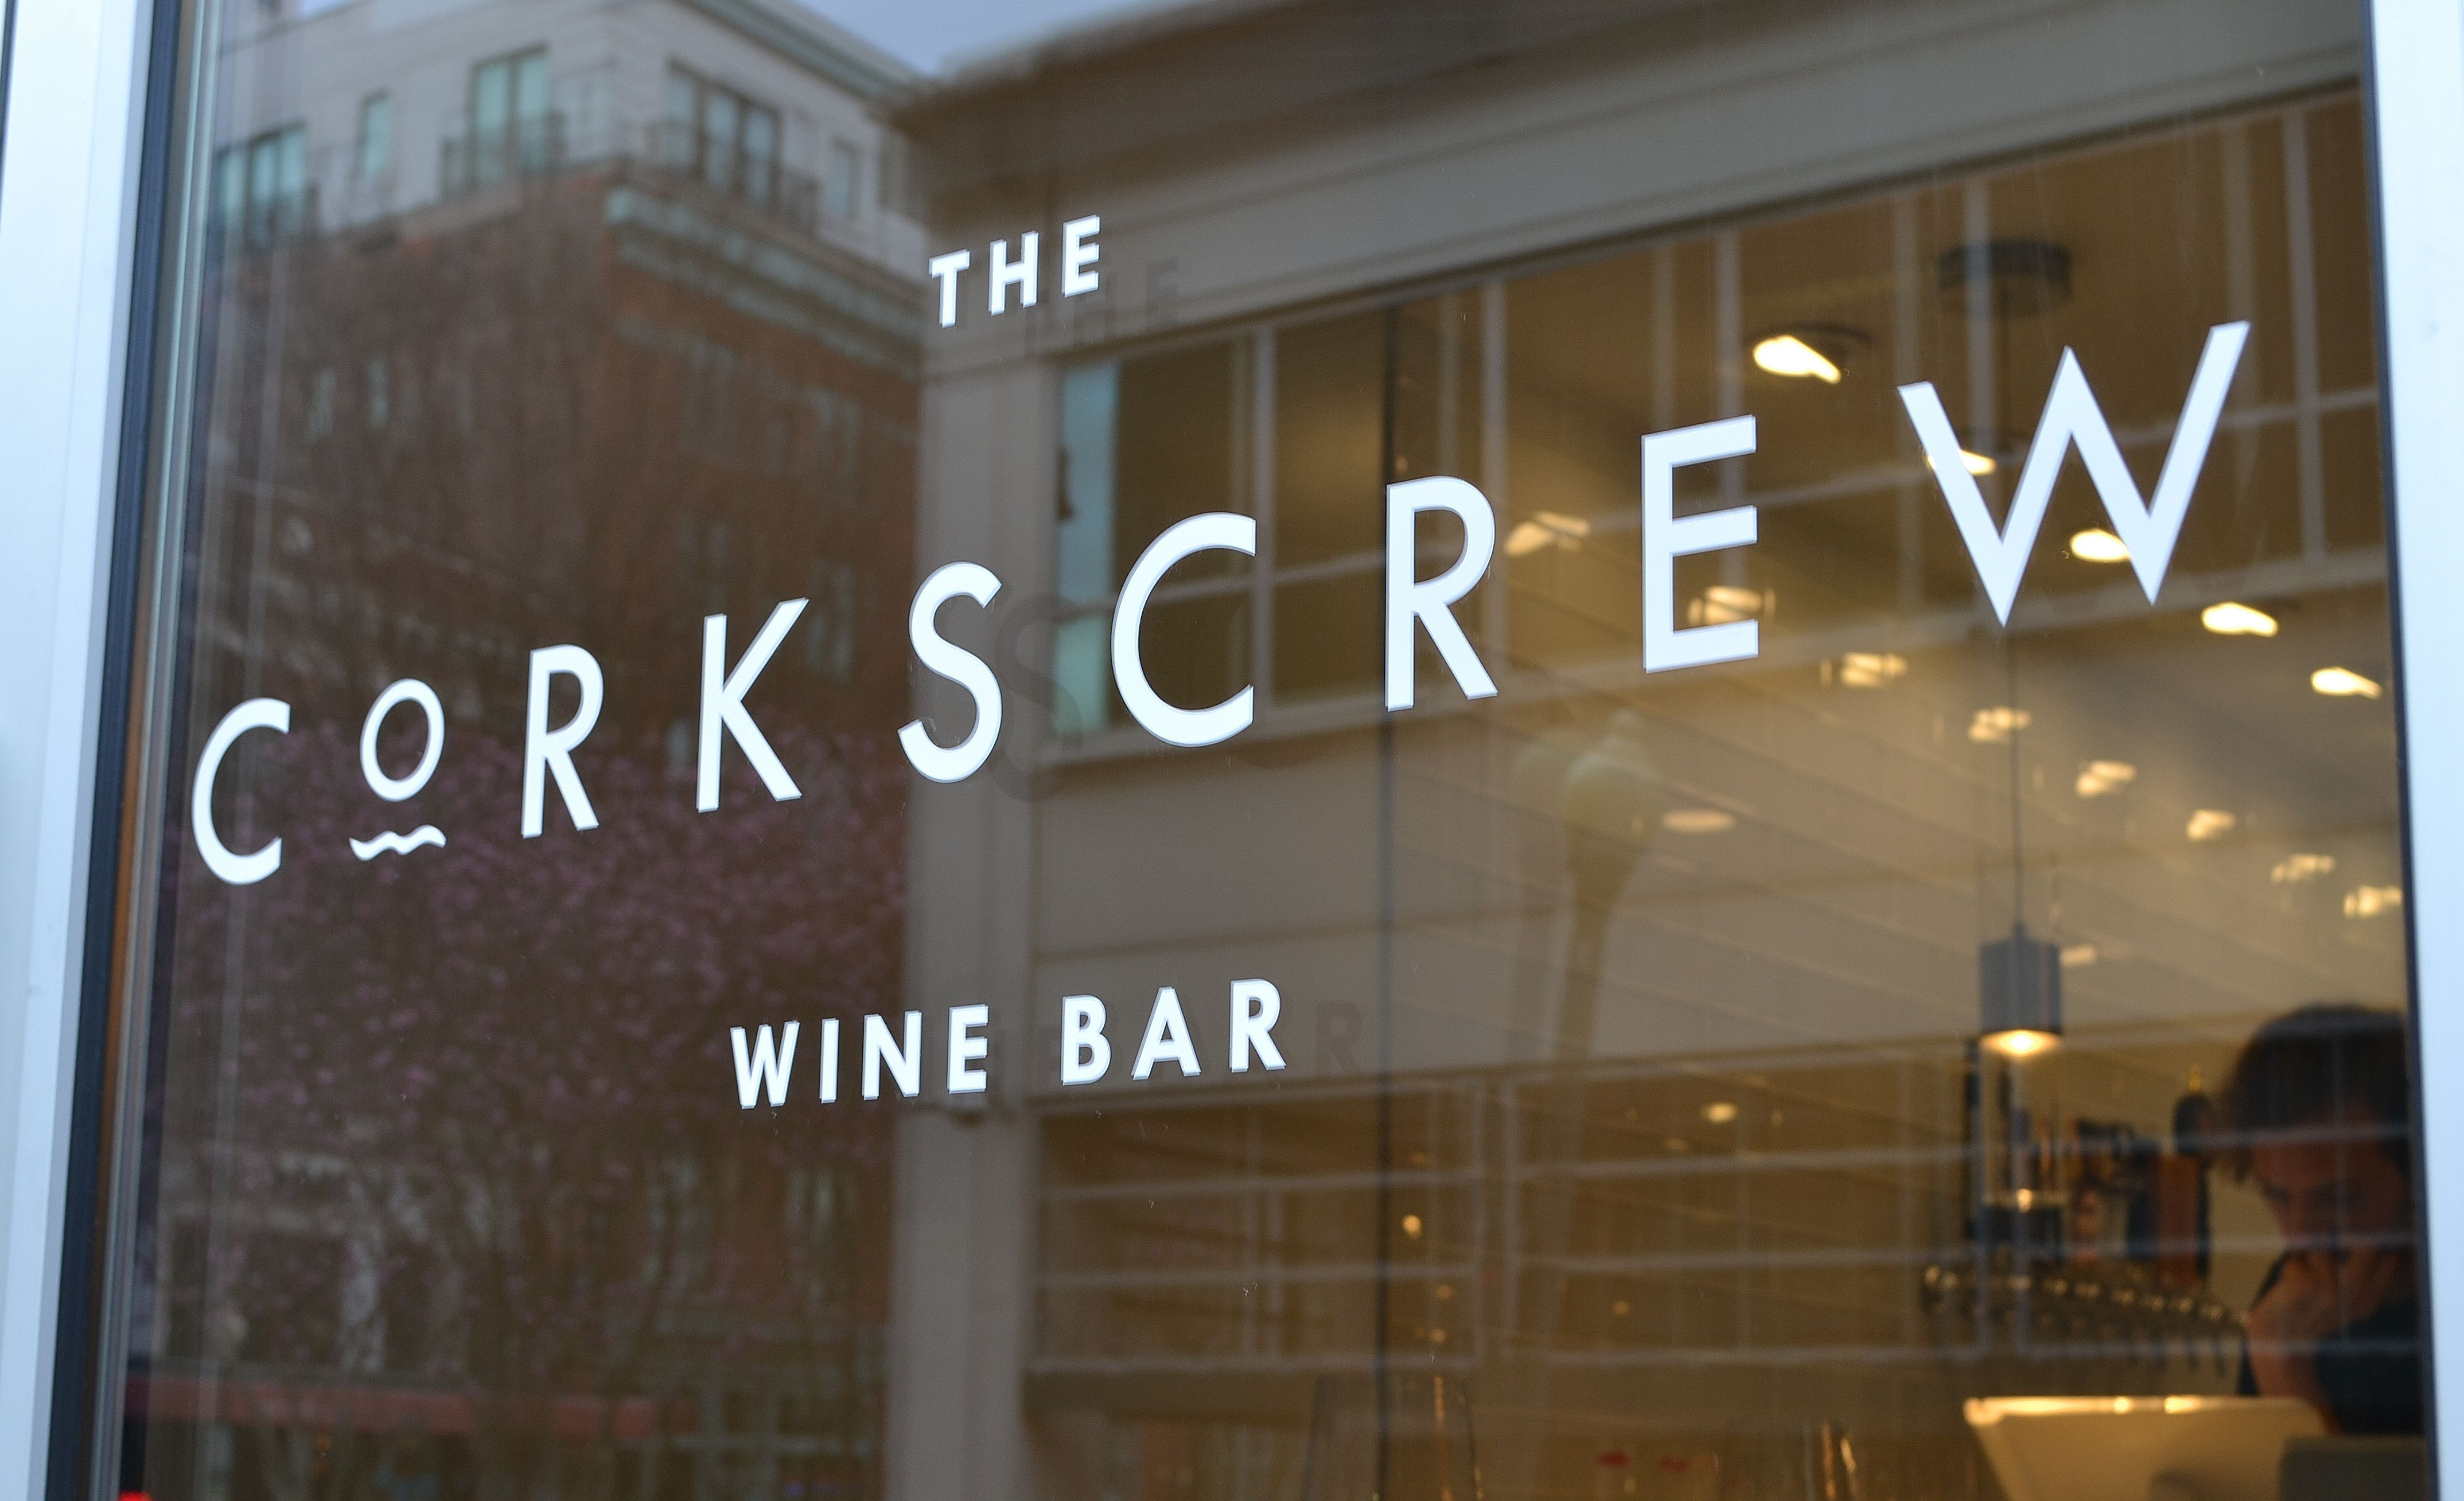 The Corkscrew Wine Bar Storefront